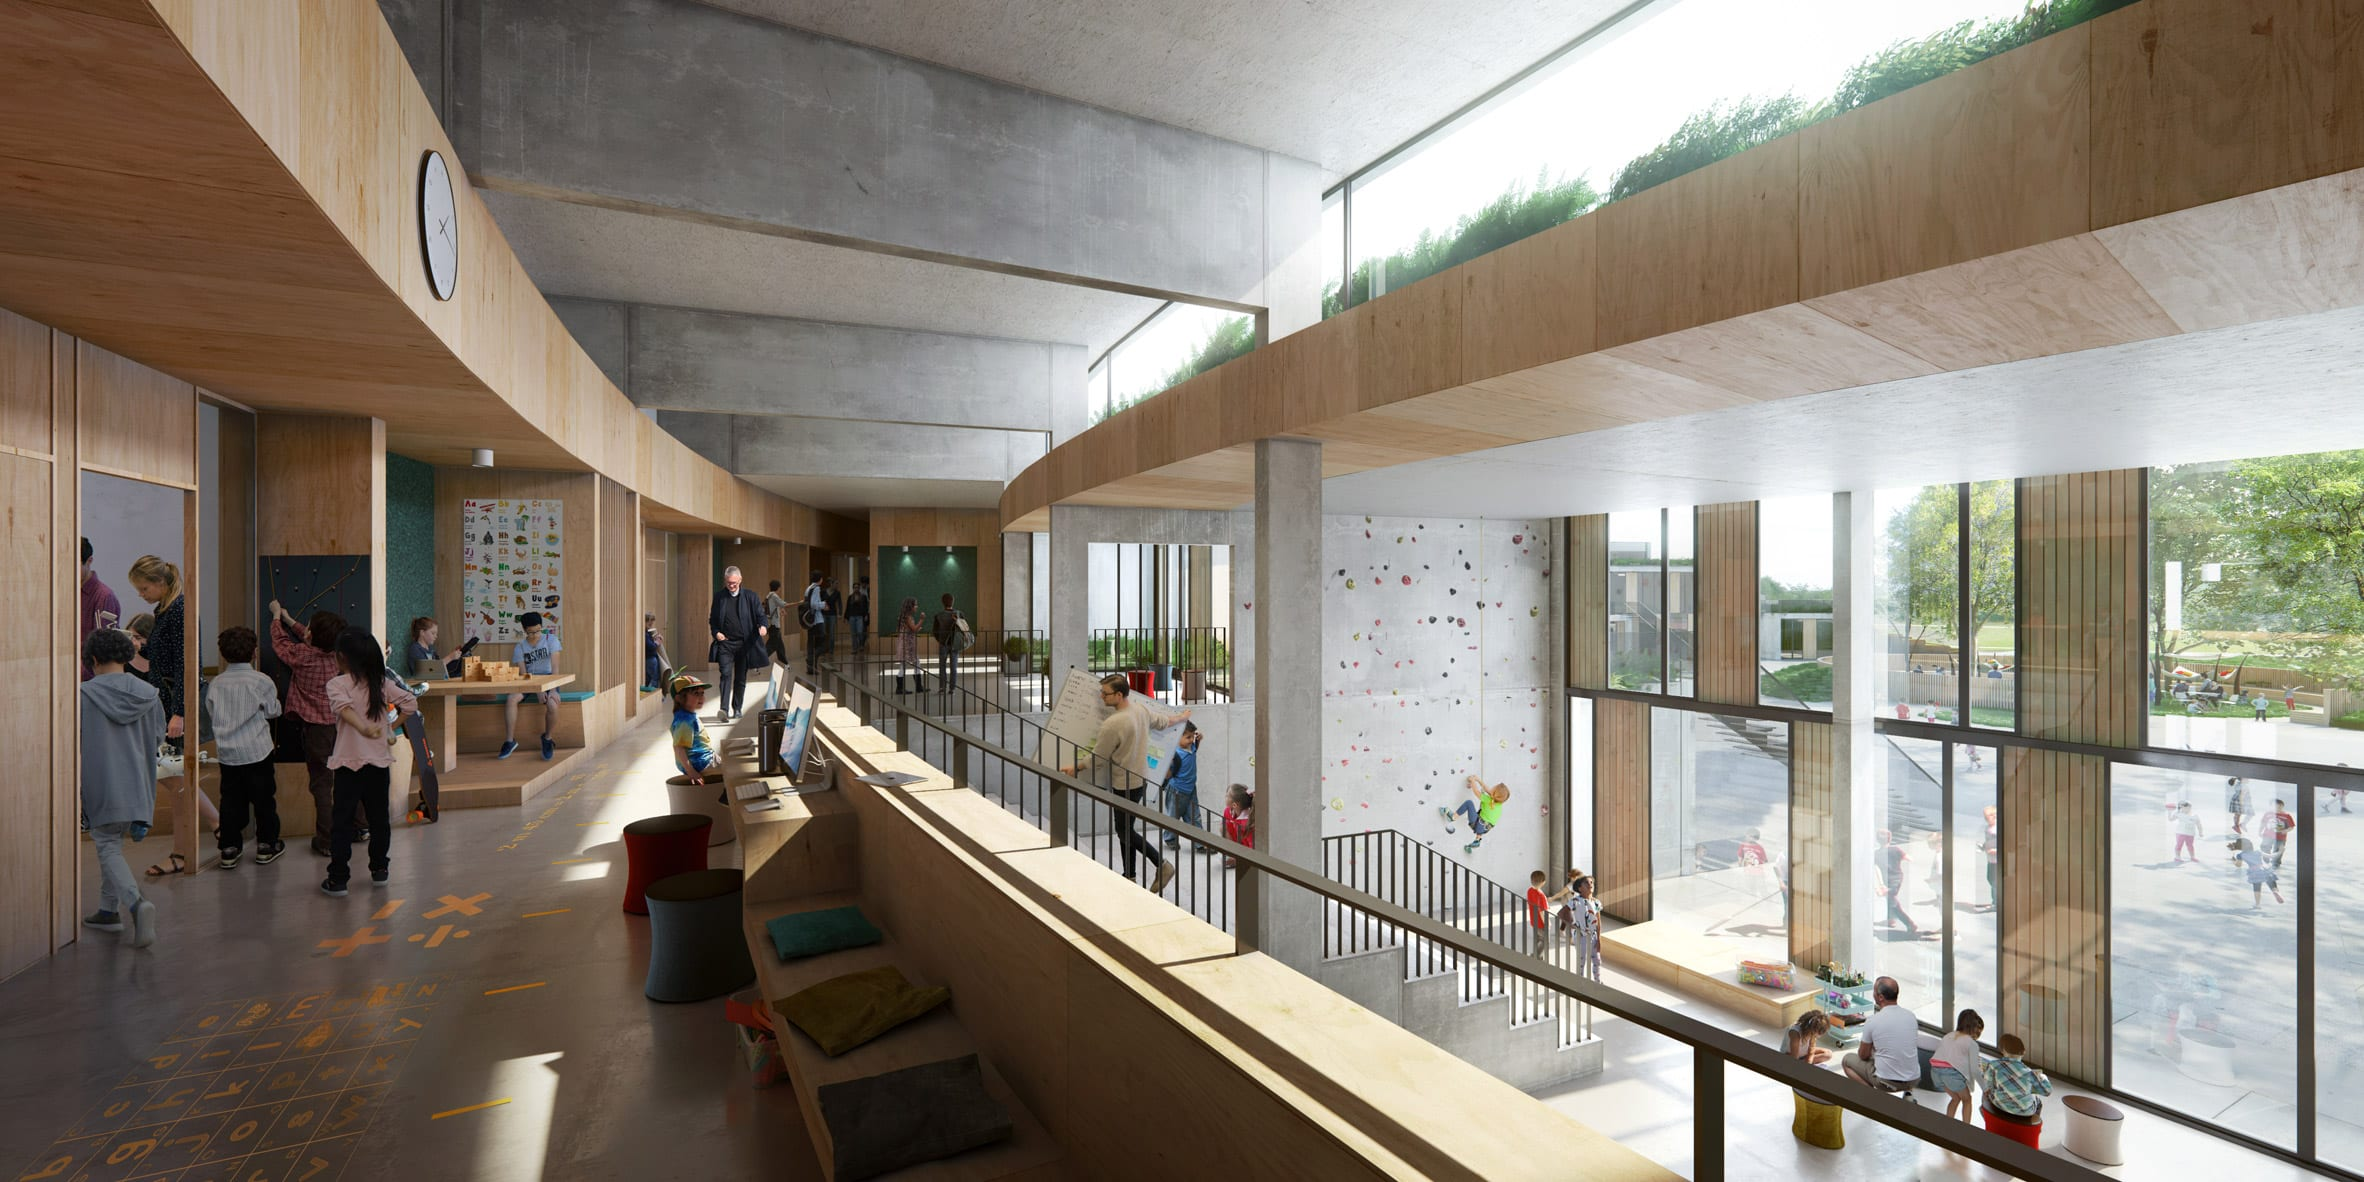 Interiors of The New School will look out to the landscape